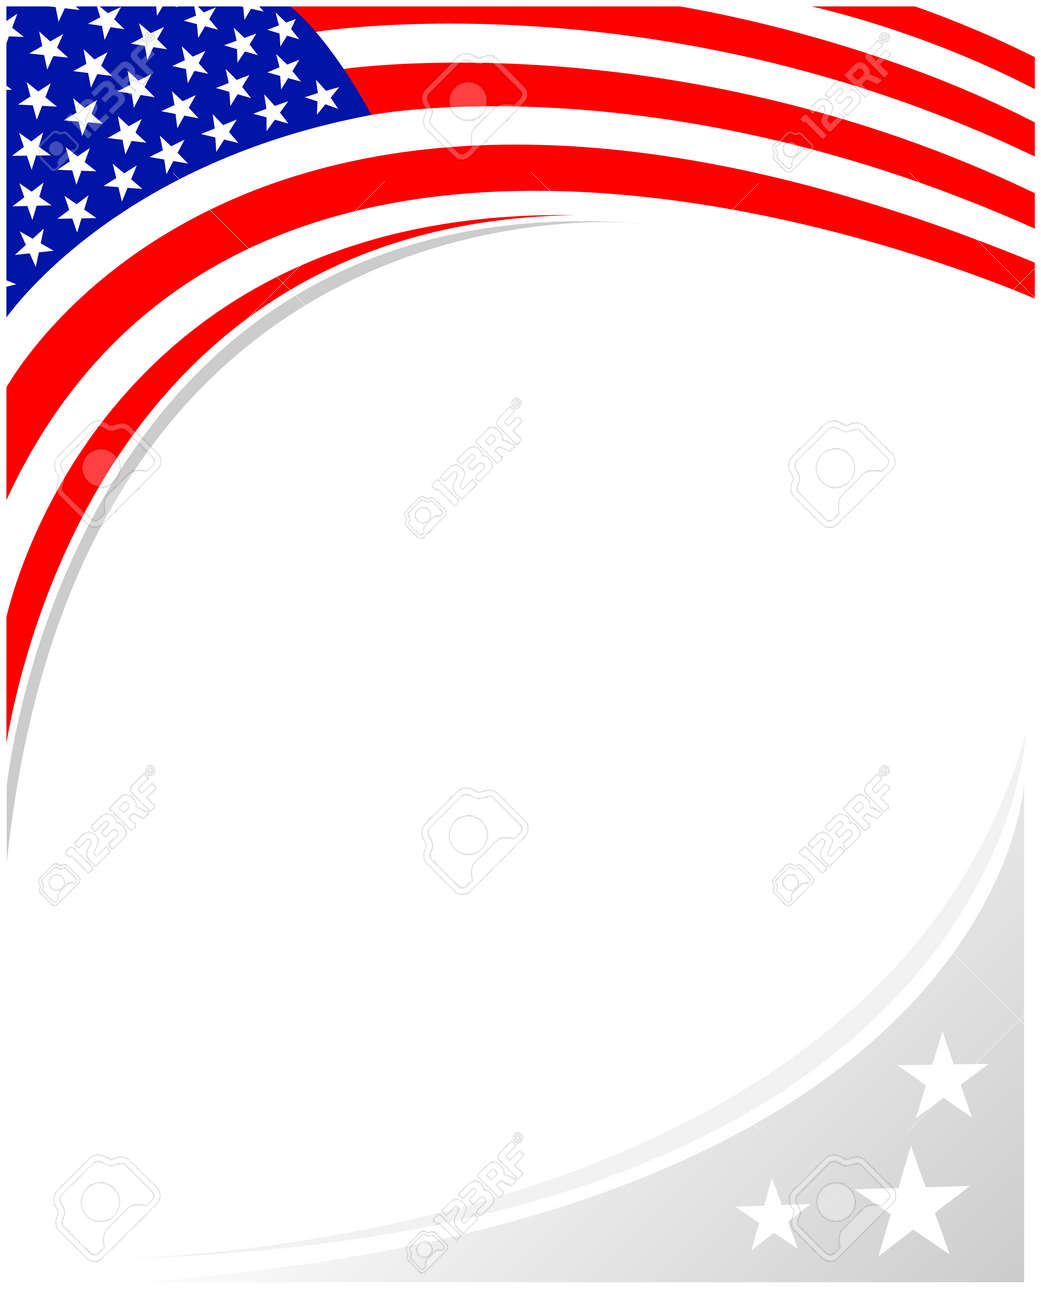 American abstract flag corner banner border with an empty space for text. - 169054326